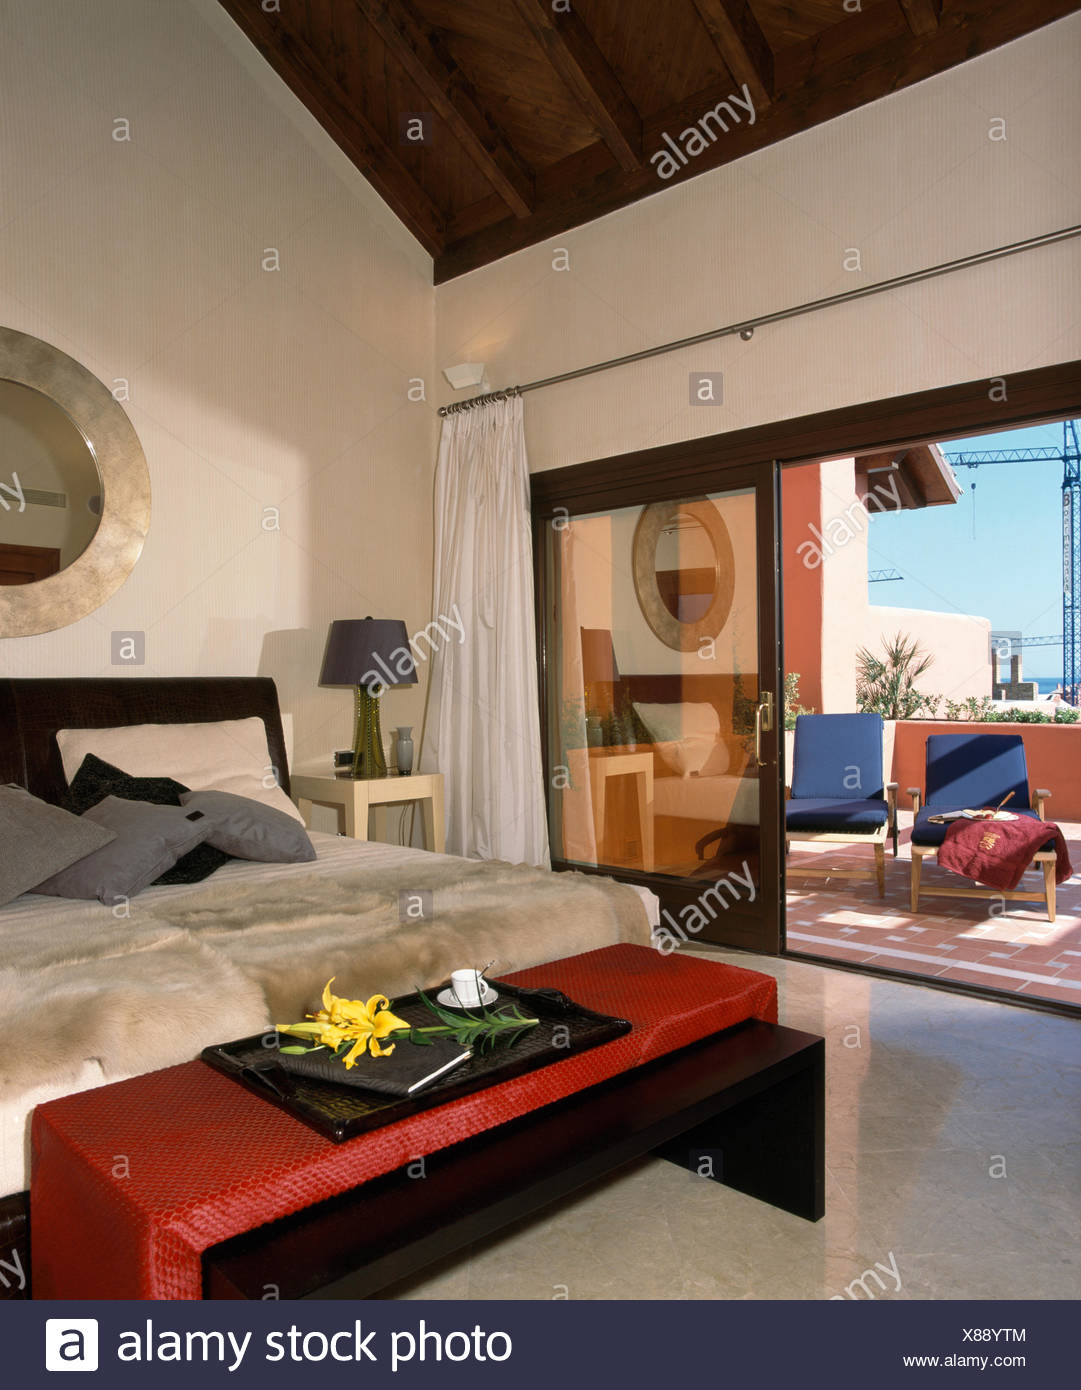 Red stool below bed with faux fur throw in modern Spanish bedroom with open glass doors to patio - Stock Image